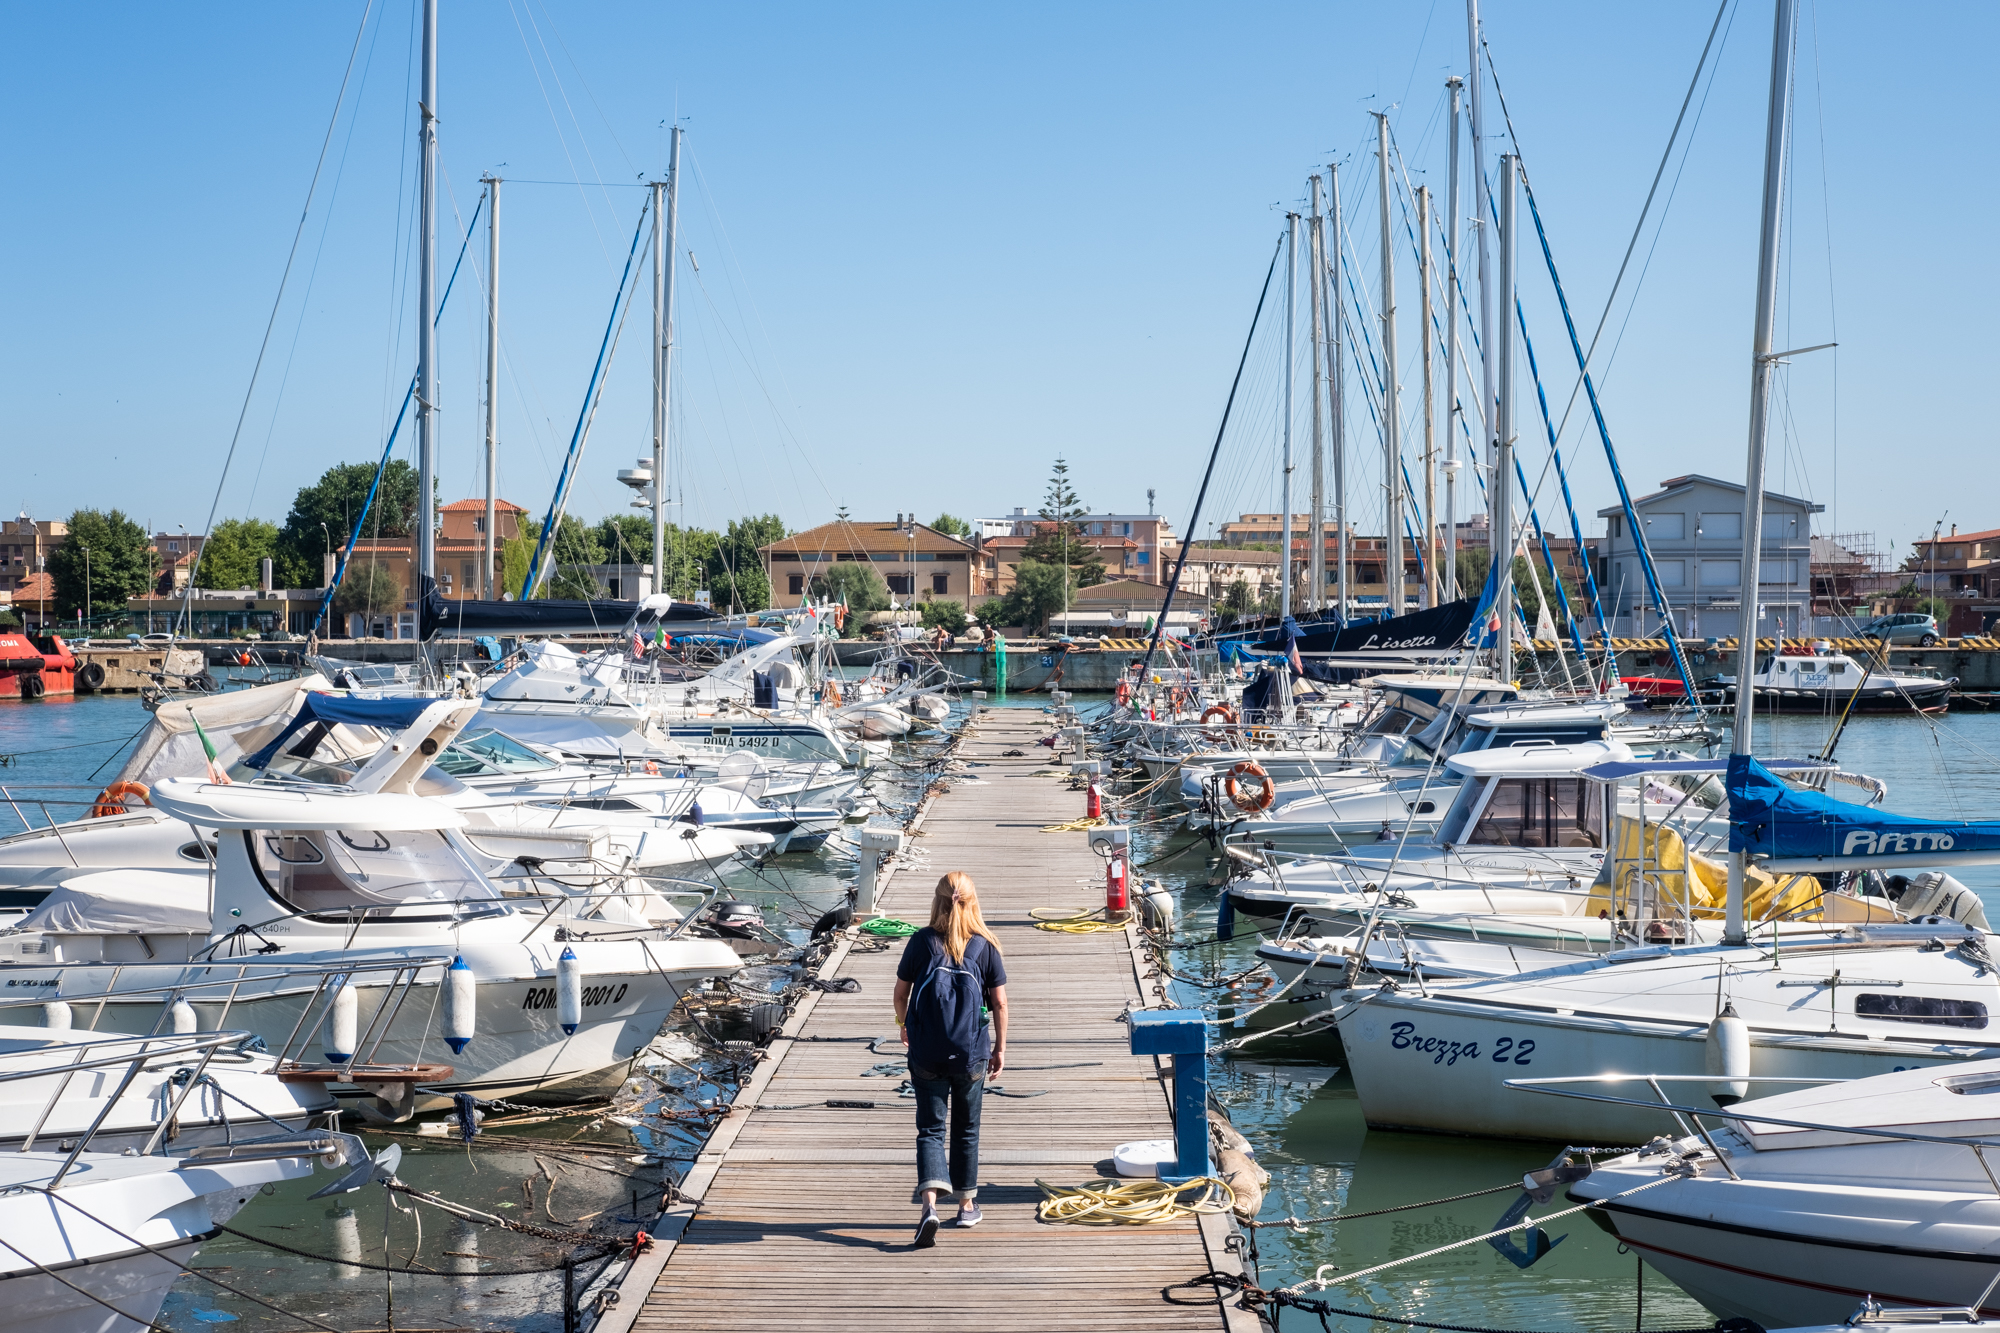 Patrizia Pilloni walks along a Fiumicino Harbor pier in Italy to meet her instructor for a daily sailing lesson.